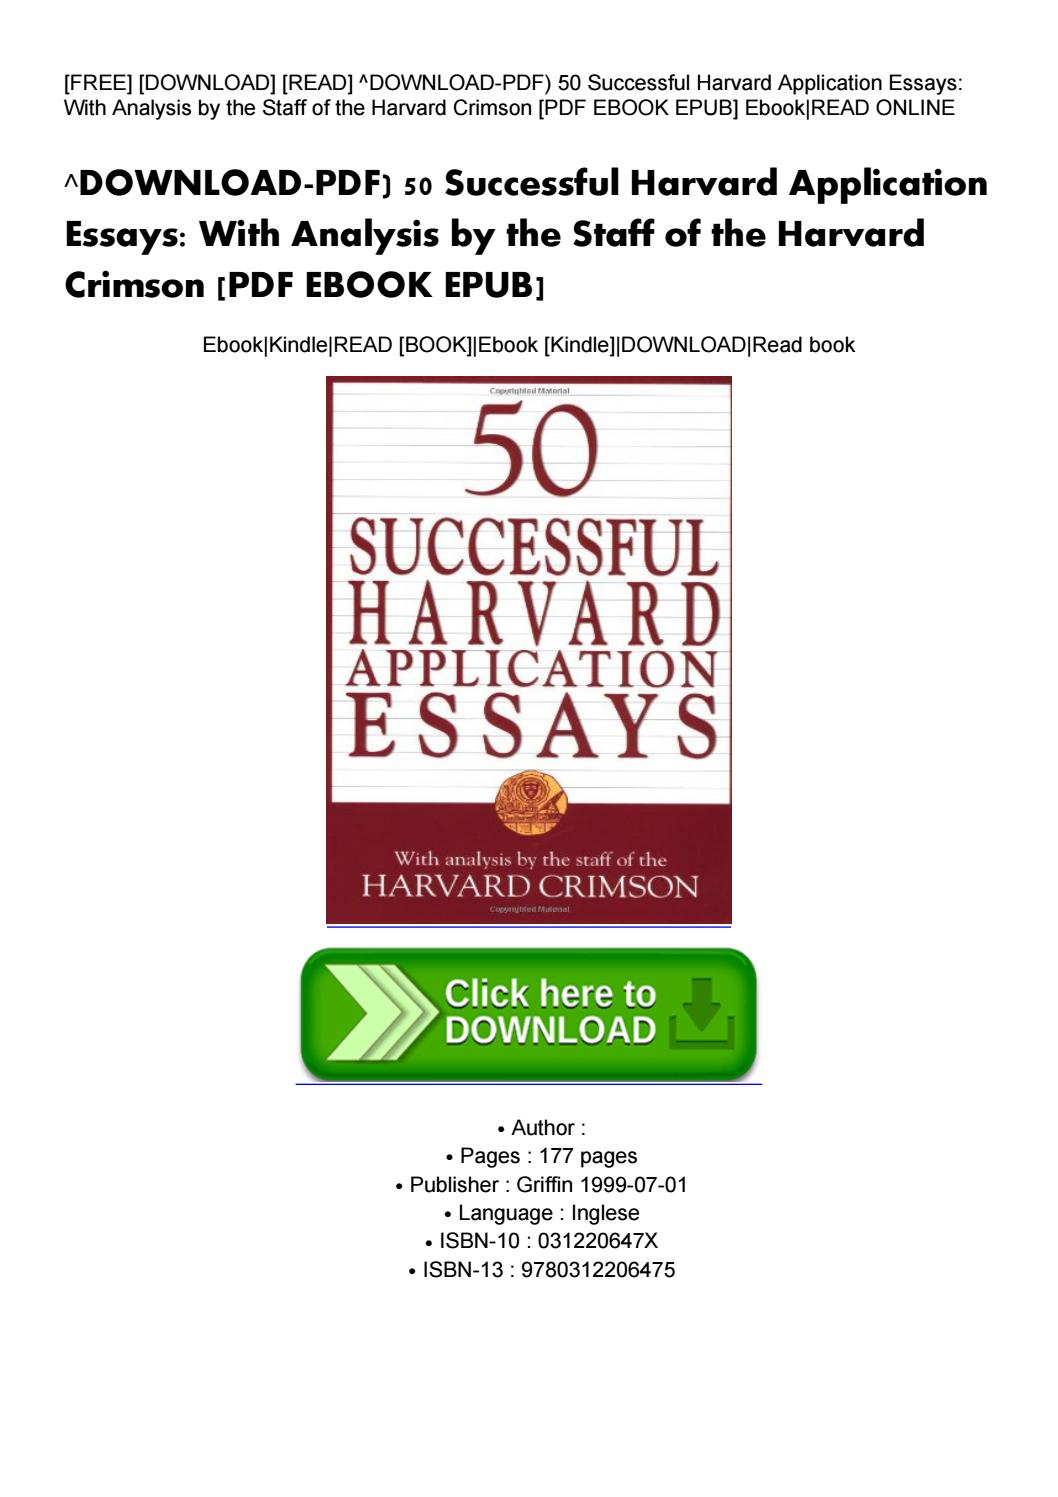 003 Essay Example Successful Harvard Application Essays Pdf Page 1 Impressive 50 Free Download Full